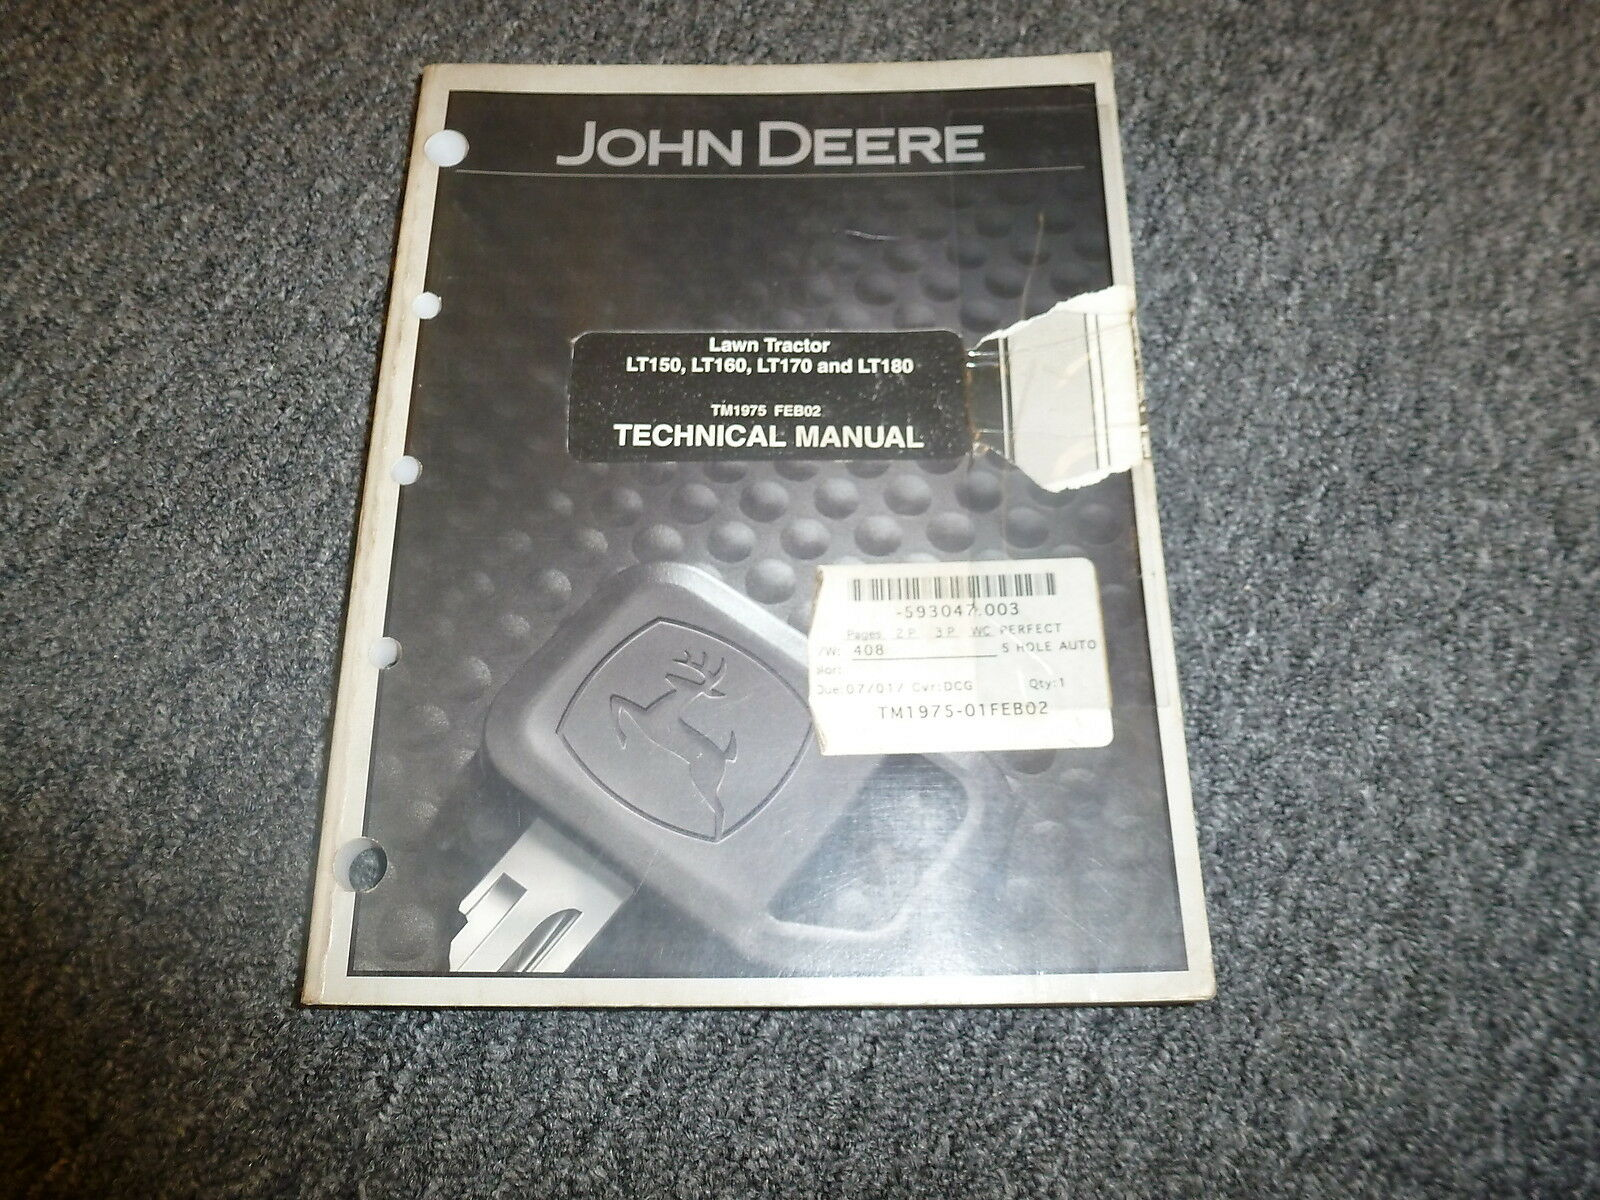 John Deere LT150 LT160 Tractor Service Shop Repair Technical Manual TM1975  1 of 1FREE Shipping ...